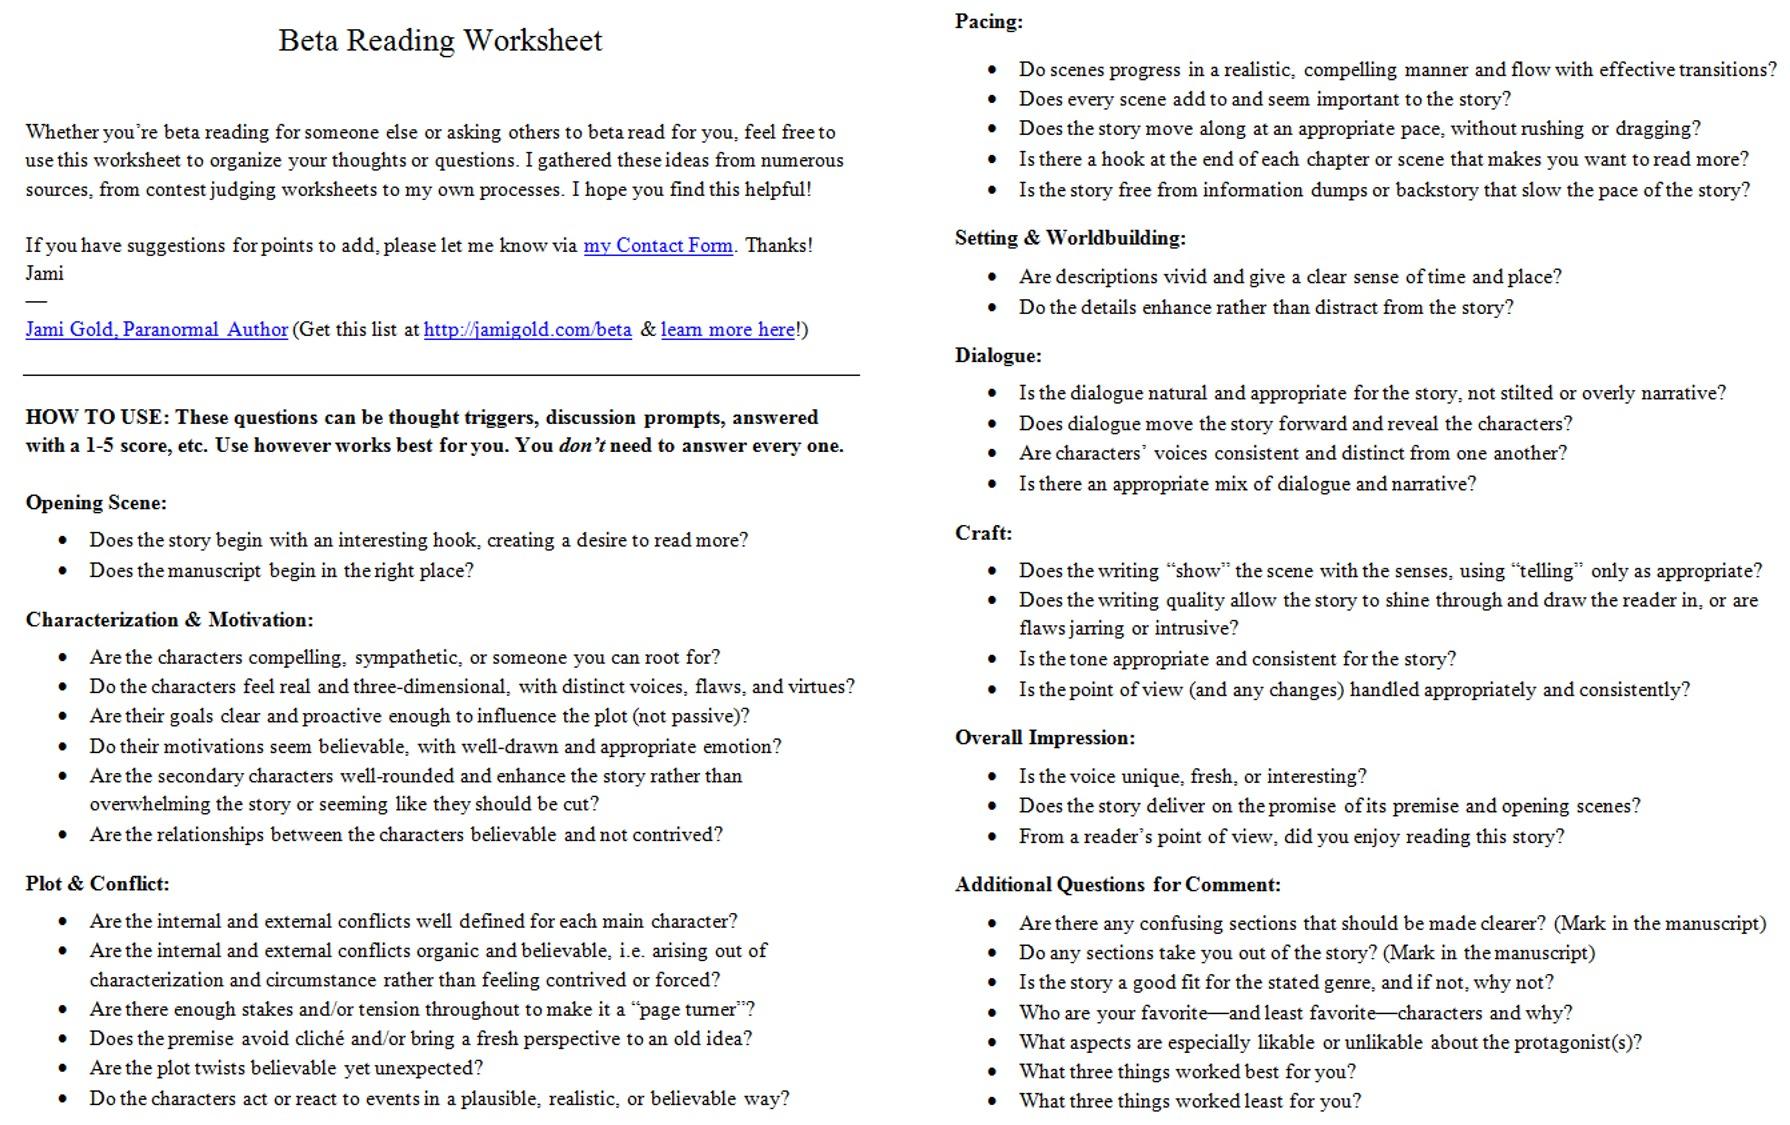 Weirdmailus  Gorgeous Worksheets For Writers  Jami Gold Paranormal Author With Goodlooking Screen Shot Of The Twopage Beta Reading Worksheet With Amusing Series And Parallel Circuits Worksheet Answers Also Complete The Food Chains Worksheet In Addition Counting Worksheets   And Coin Identification Worksheet As Well As Conjunction Worksheet Additionally Factor Trees Worksheets From Jamigoldcom With Weirdmailus  Goodlooking Worksheets For Writers  Jami Gold Paranormal Author With Amusing Screen Shot Of The Twopage Beta Reading Worksheet And Gorgeous Series And Parallel Circuits Worksheet Answers Also Complete The Food Chains Worksheet In Addition Counting Worksheets   From Jamigoldcom